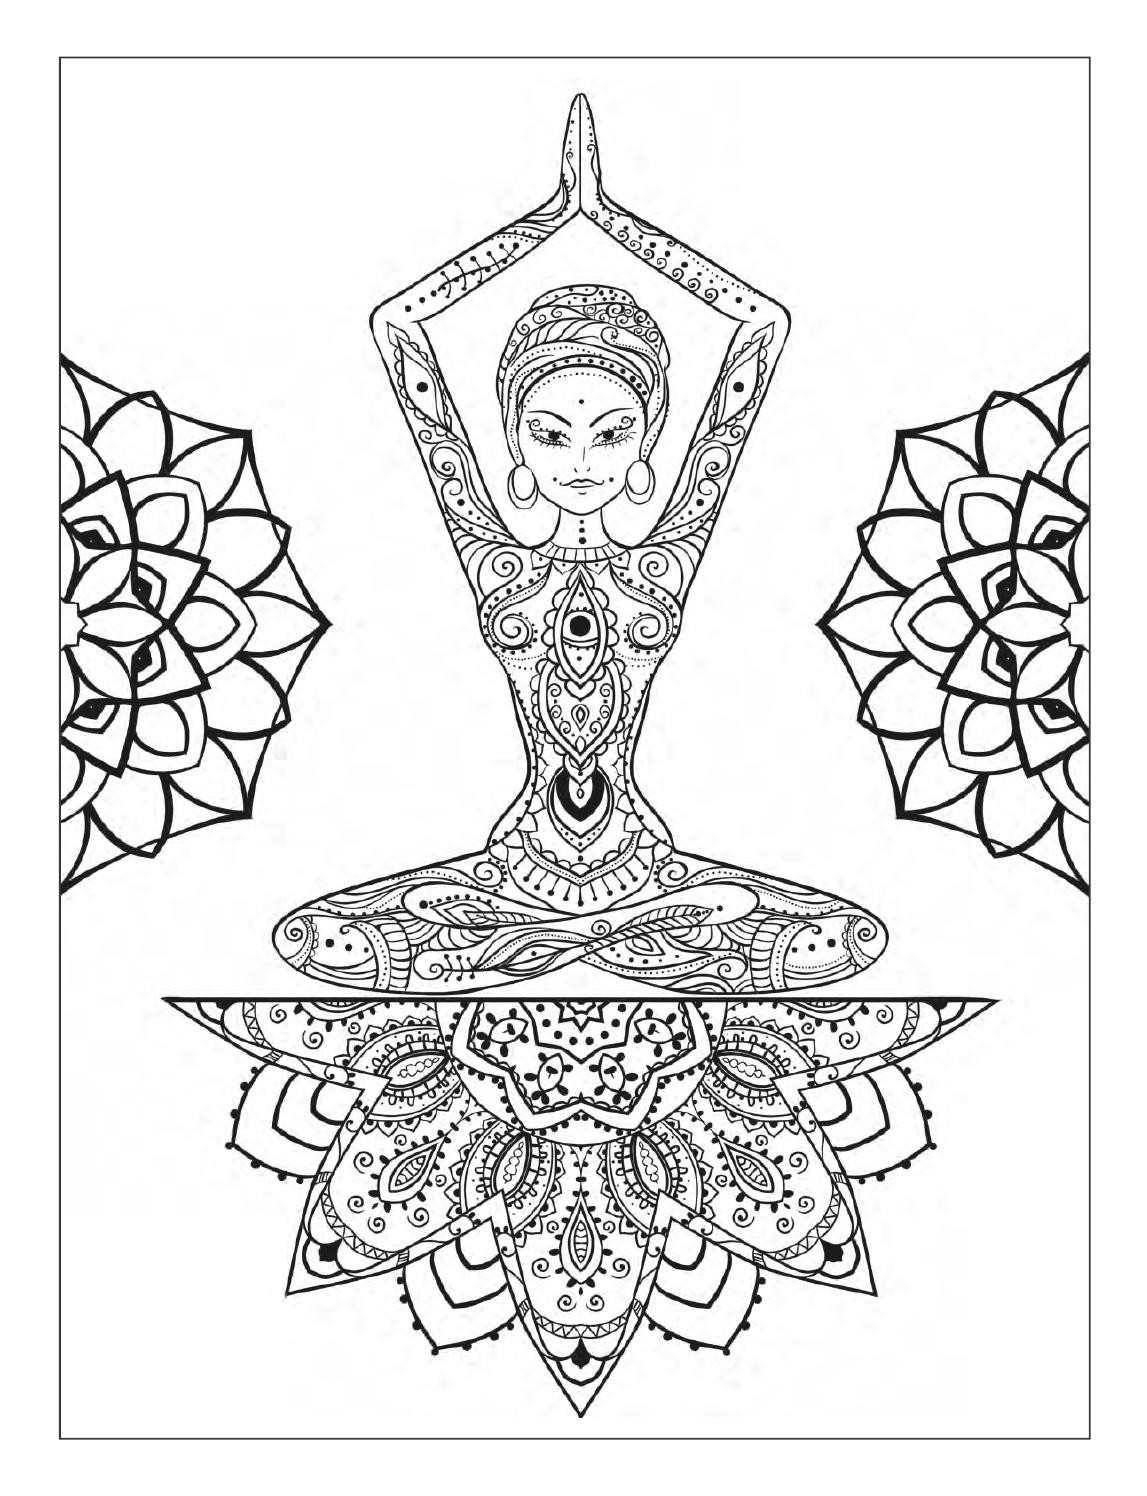 meditation coloring pages meditation printable adult coloring page from favoreads etsy coloring meditation pages